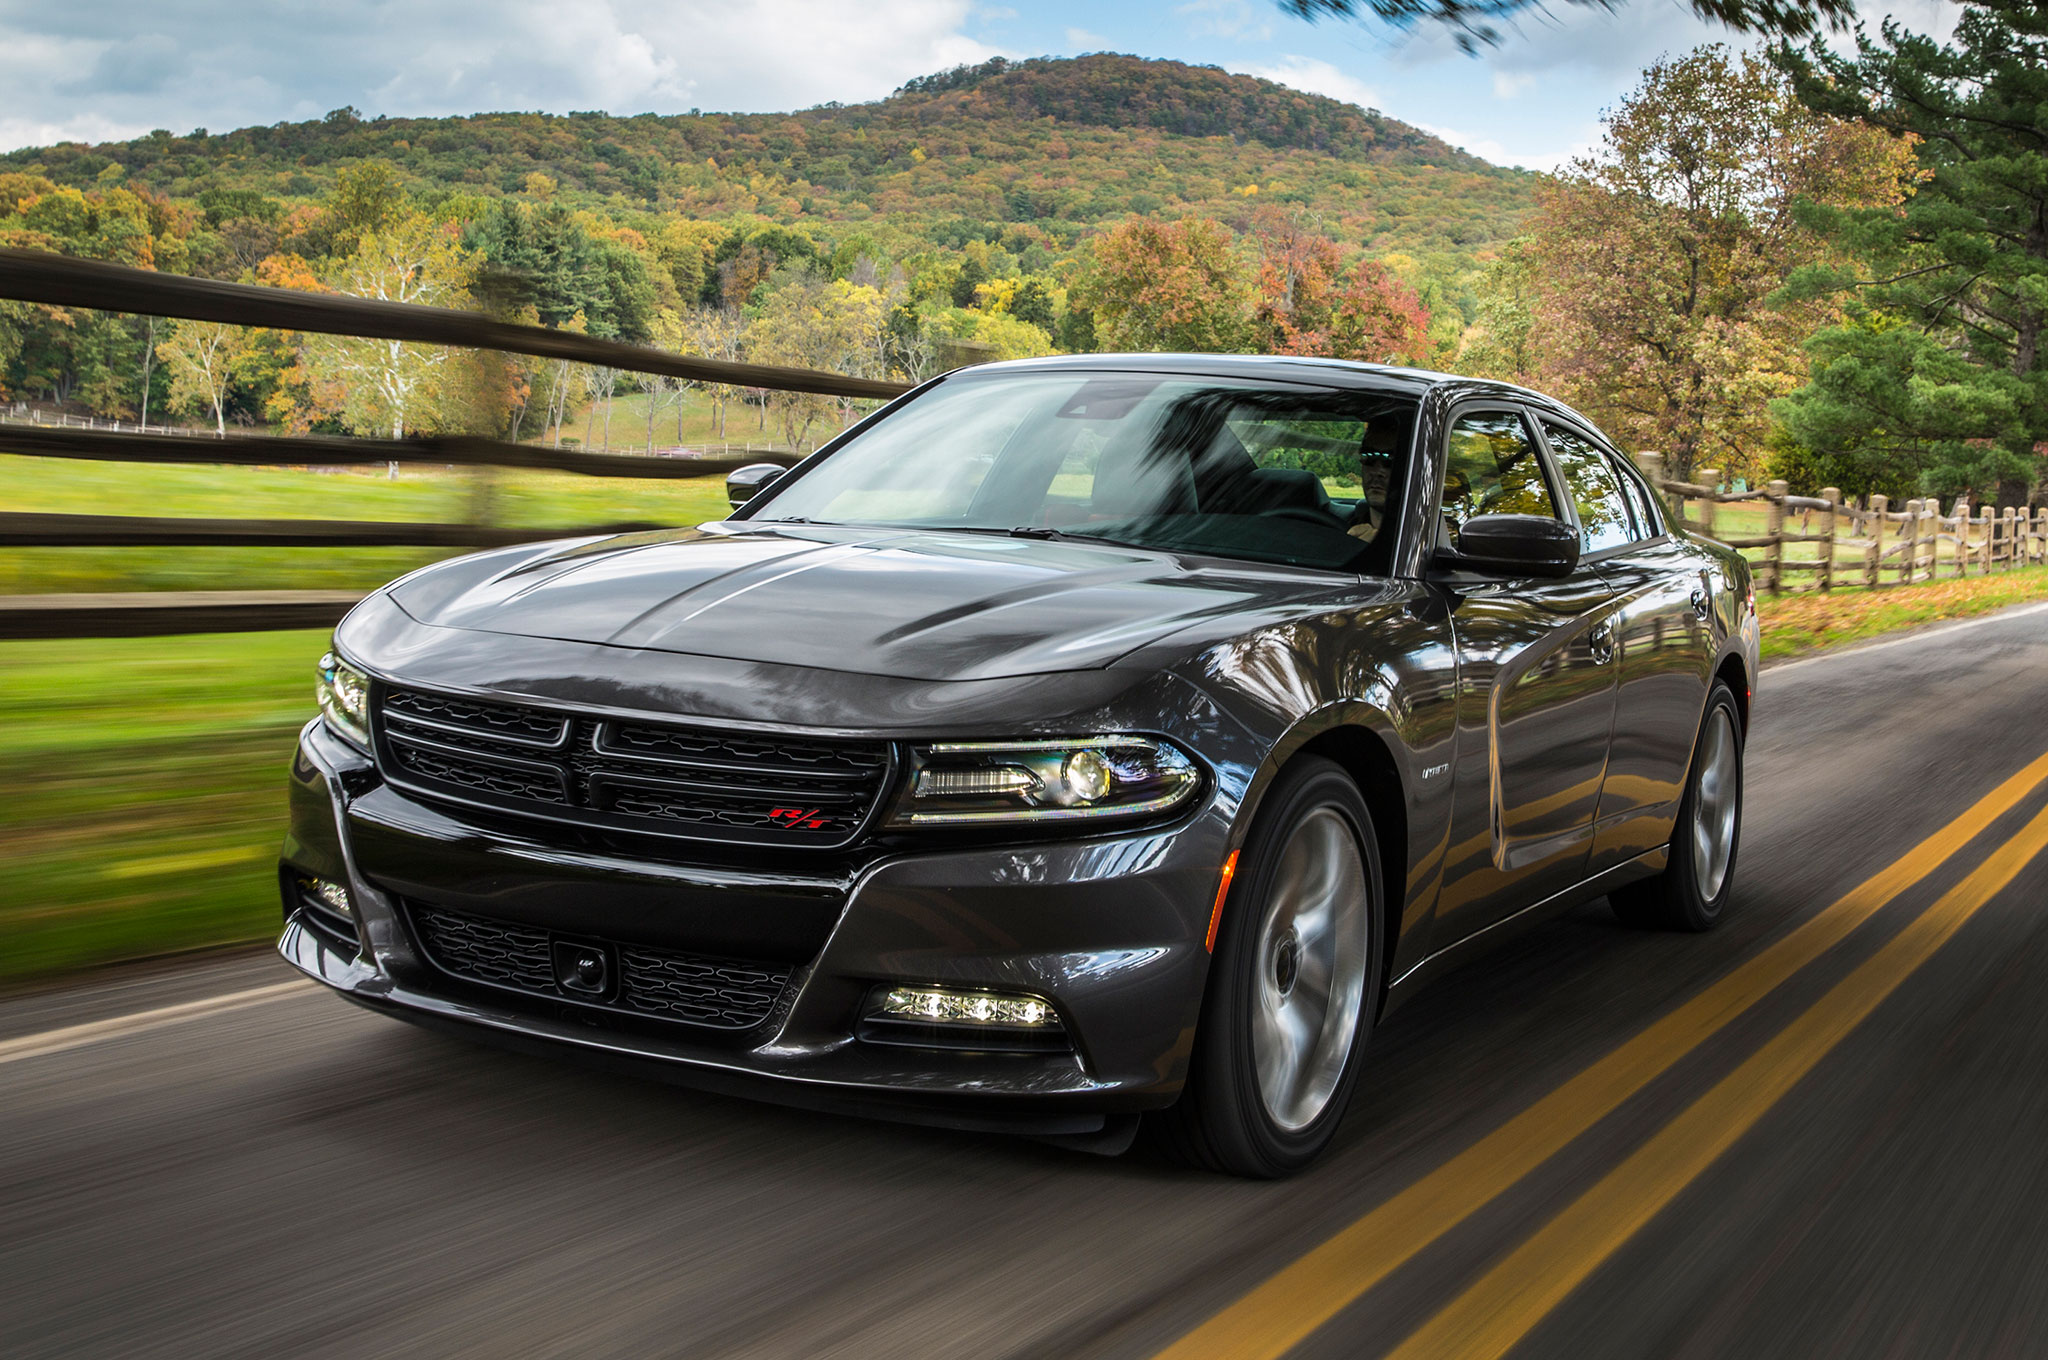 2015 Dodge Charger RT Front Three Quarter View In Montion 11